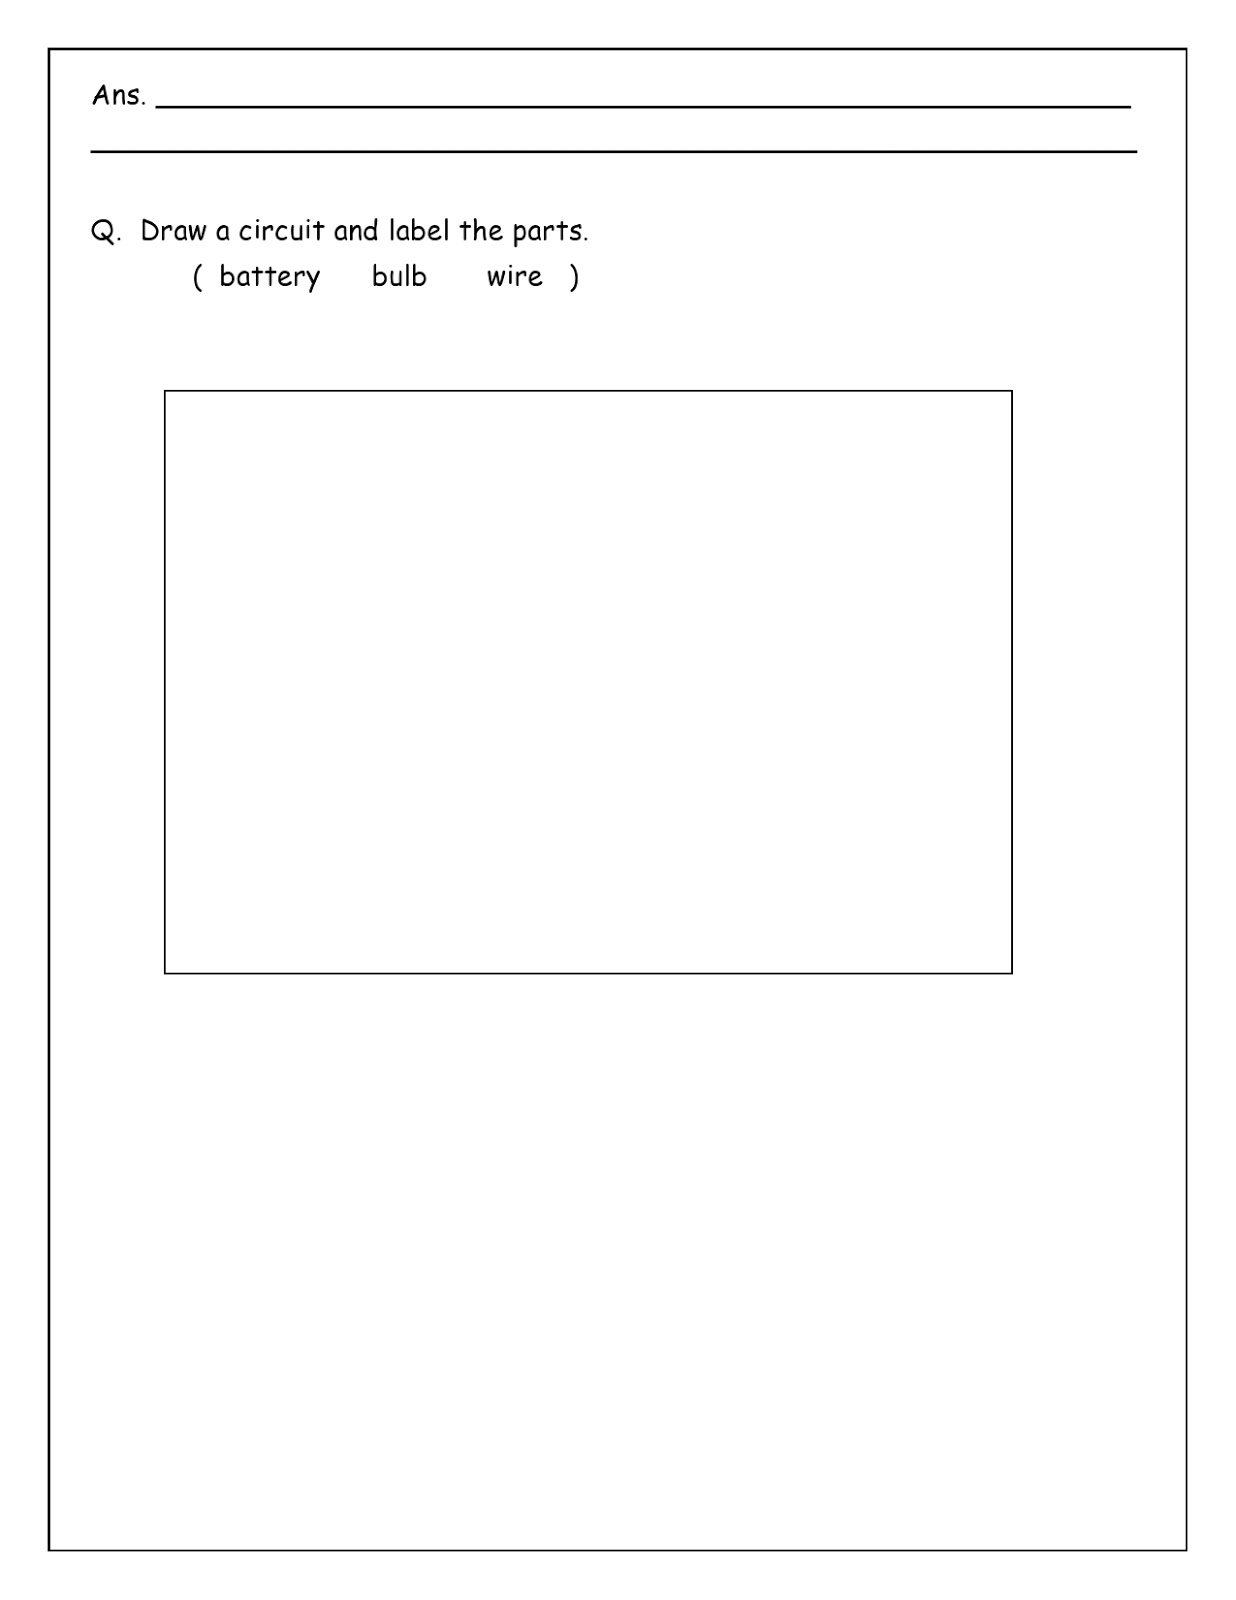 Birla World School Oman Revision Worksheets For Grade 2 As On 26 10